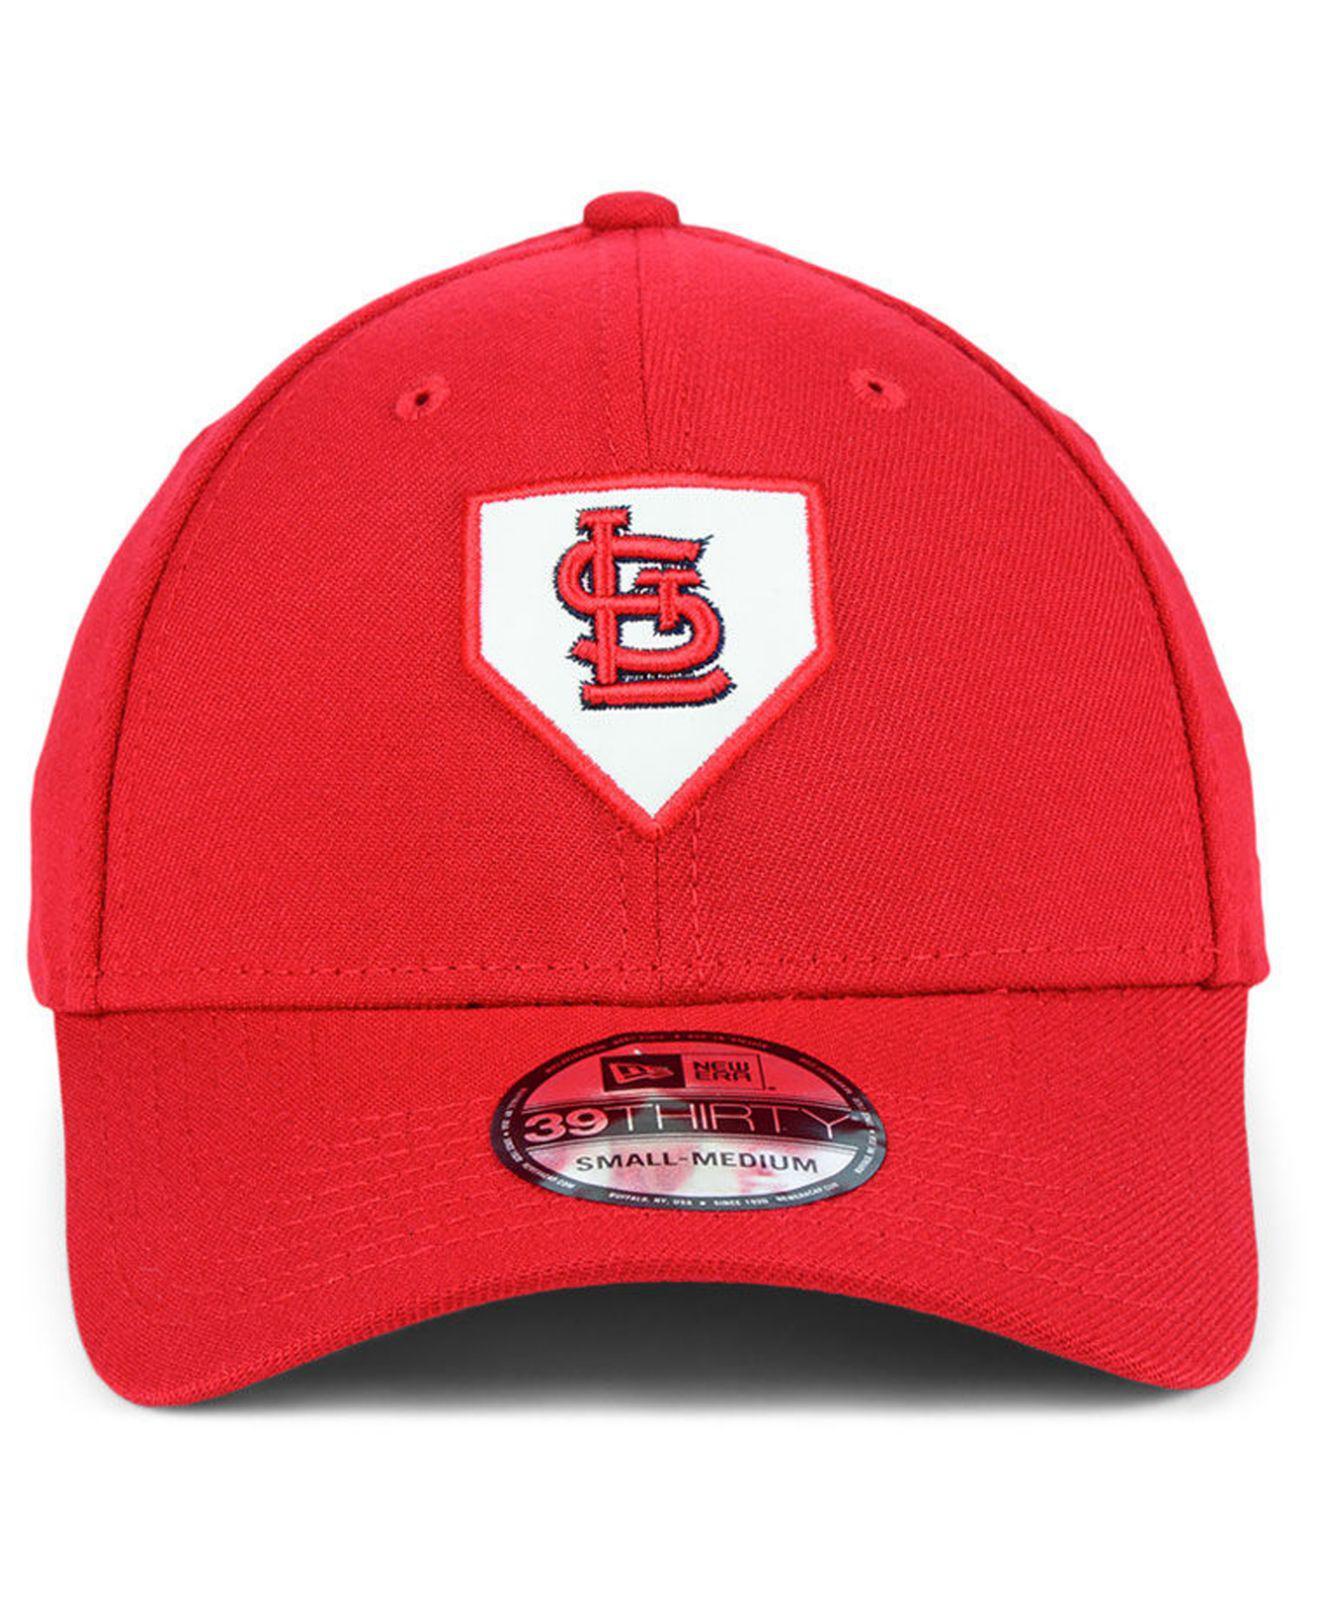 reputable site b4c2e 1cc48 ... authentic lyst ktz st. louis cardinals the plate 39thirty cap in red  for men 9754b